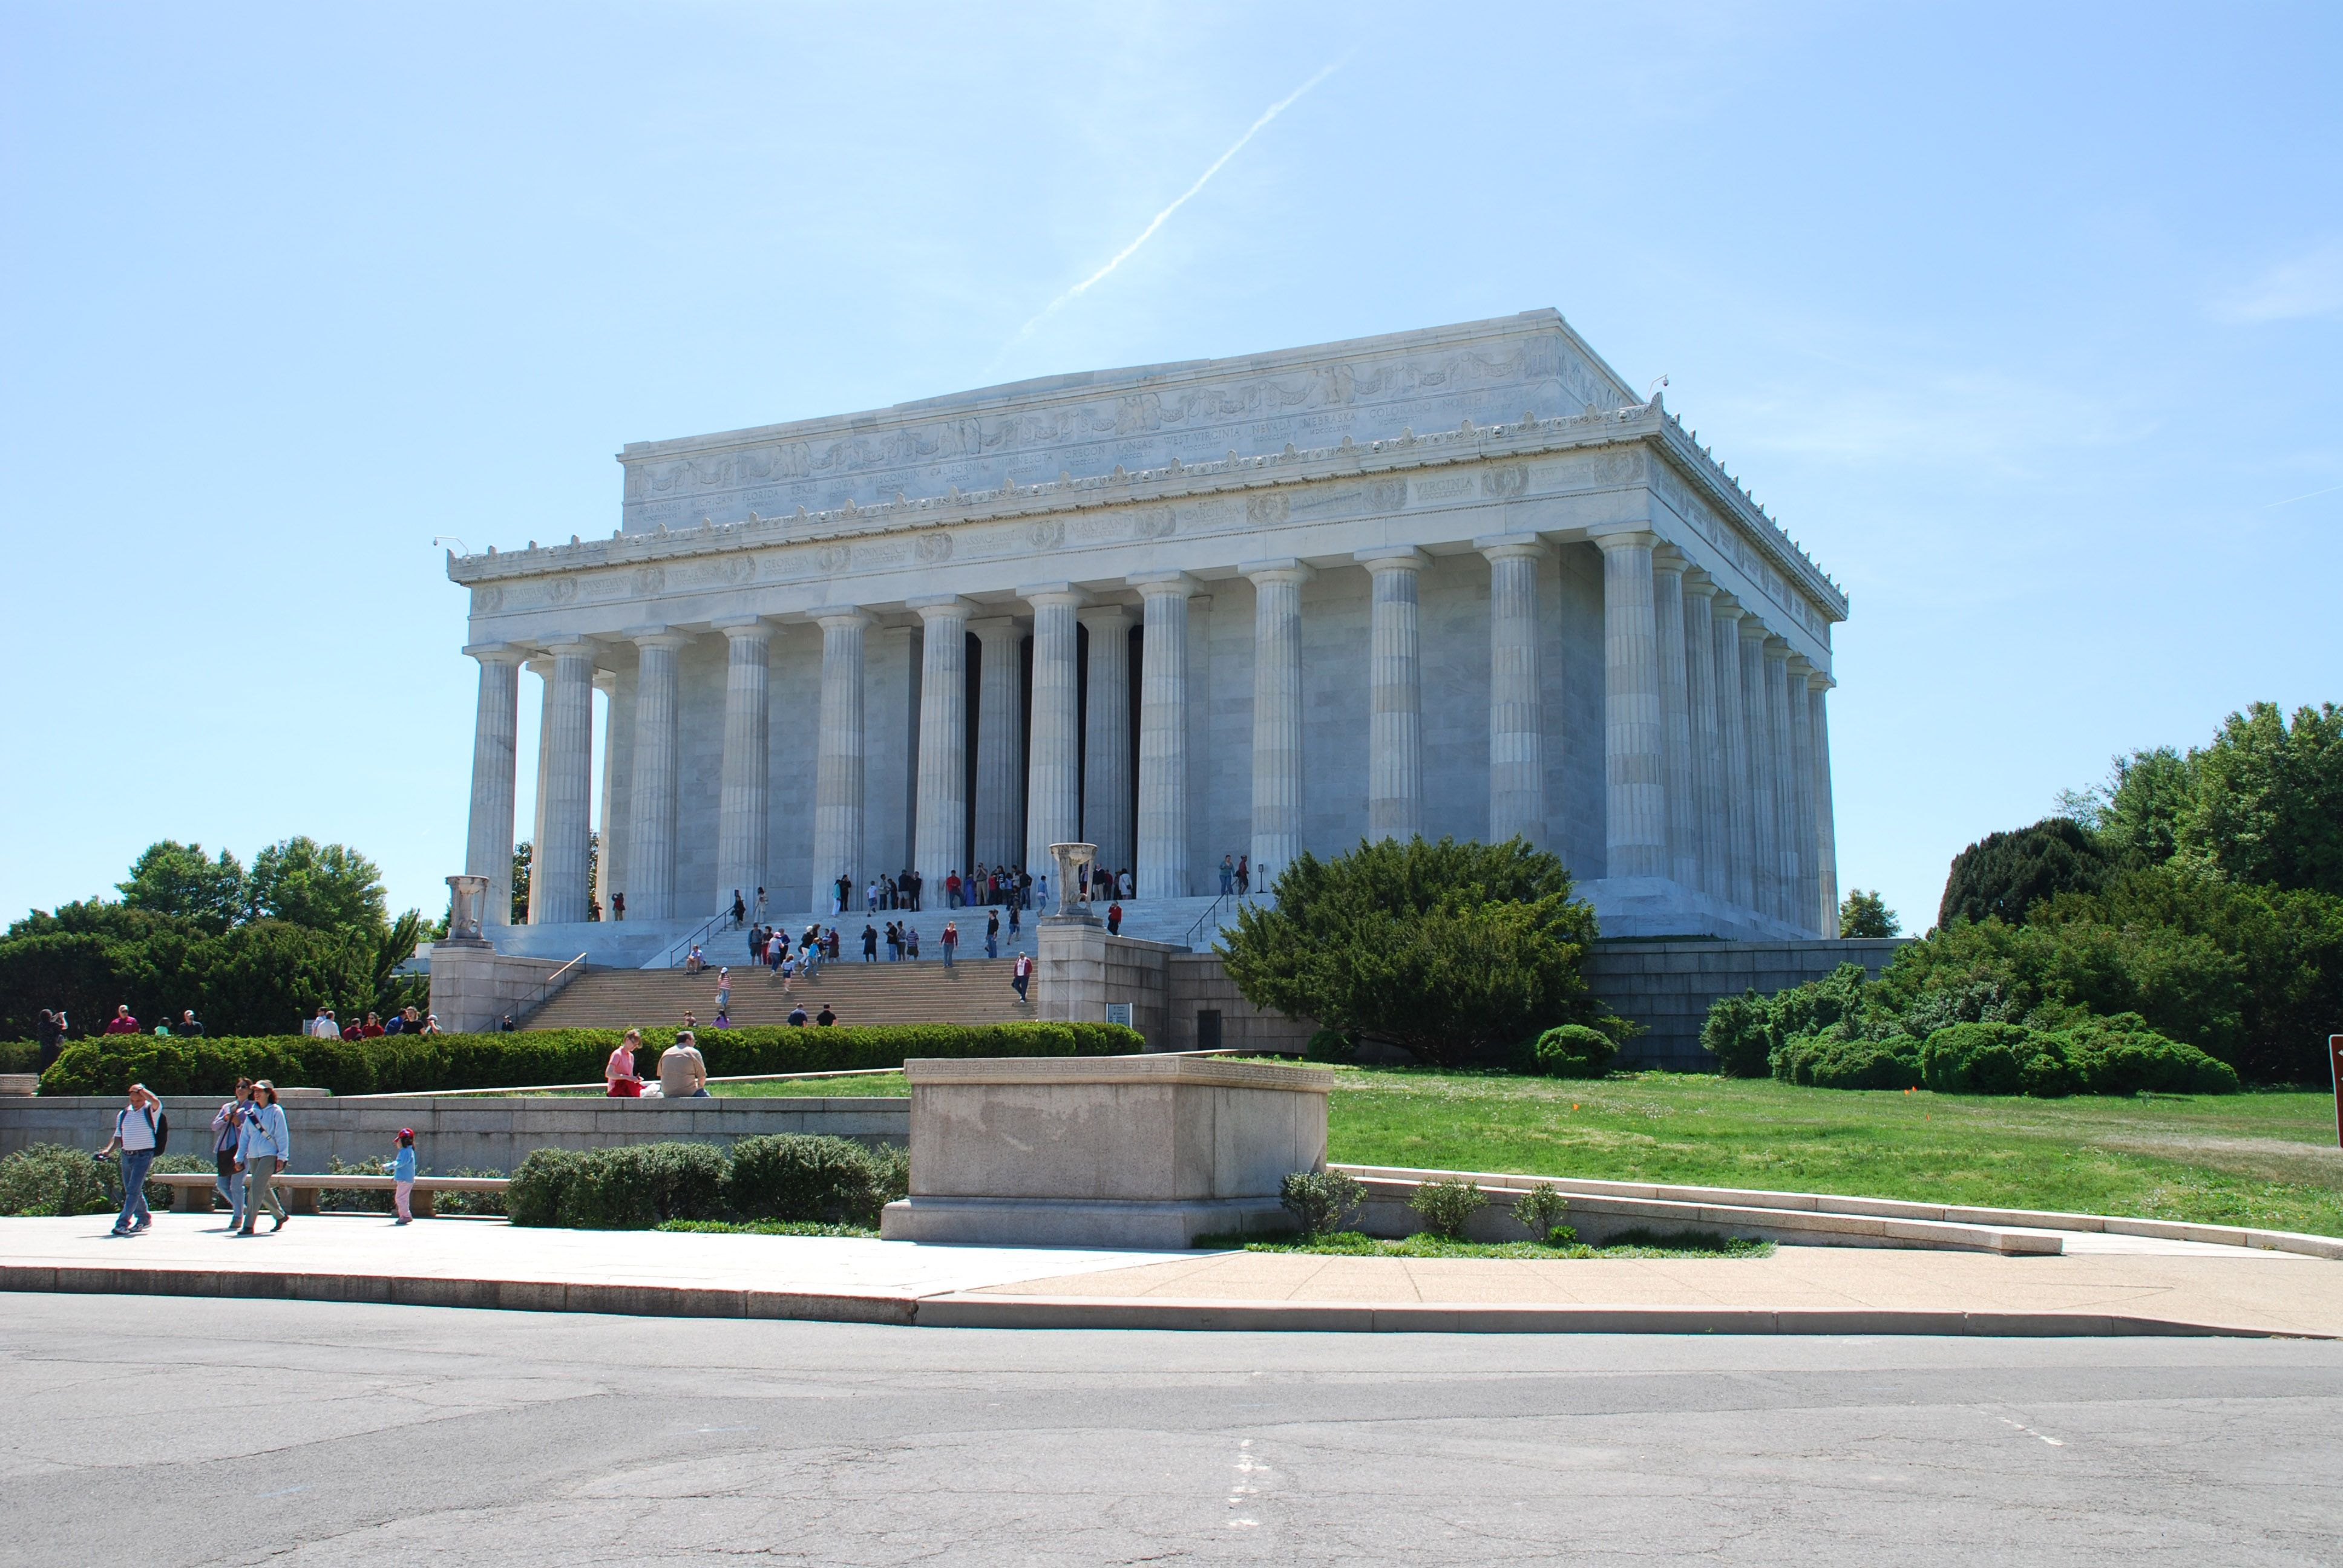 Lincoln Memorial, National Mall : Travel Wallpaper and Stock Photo